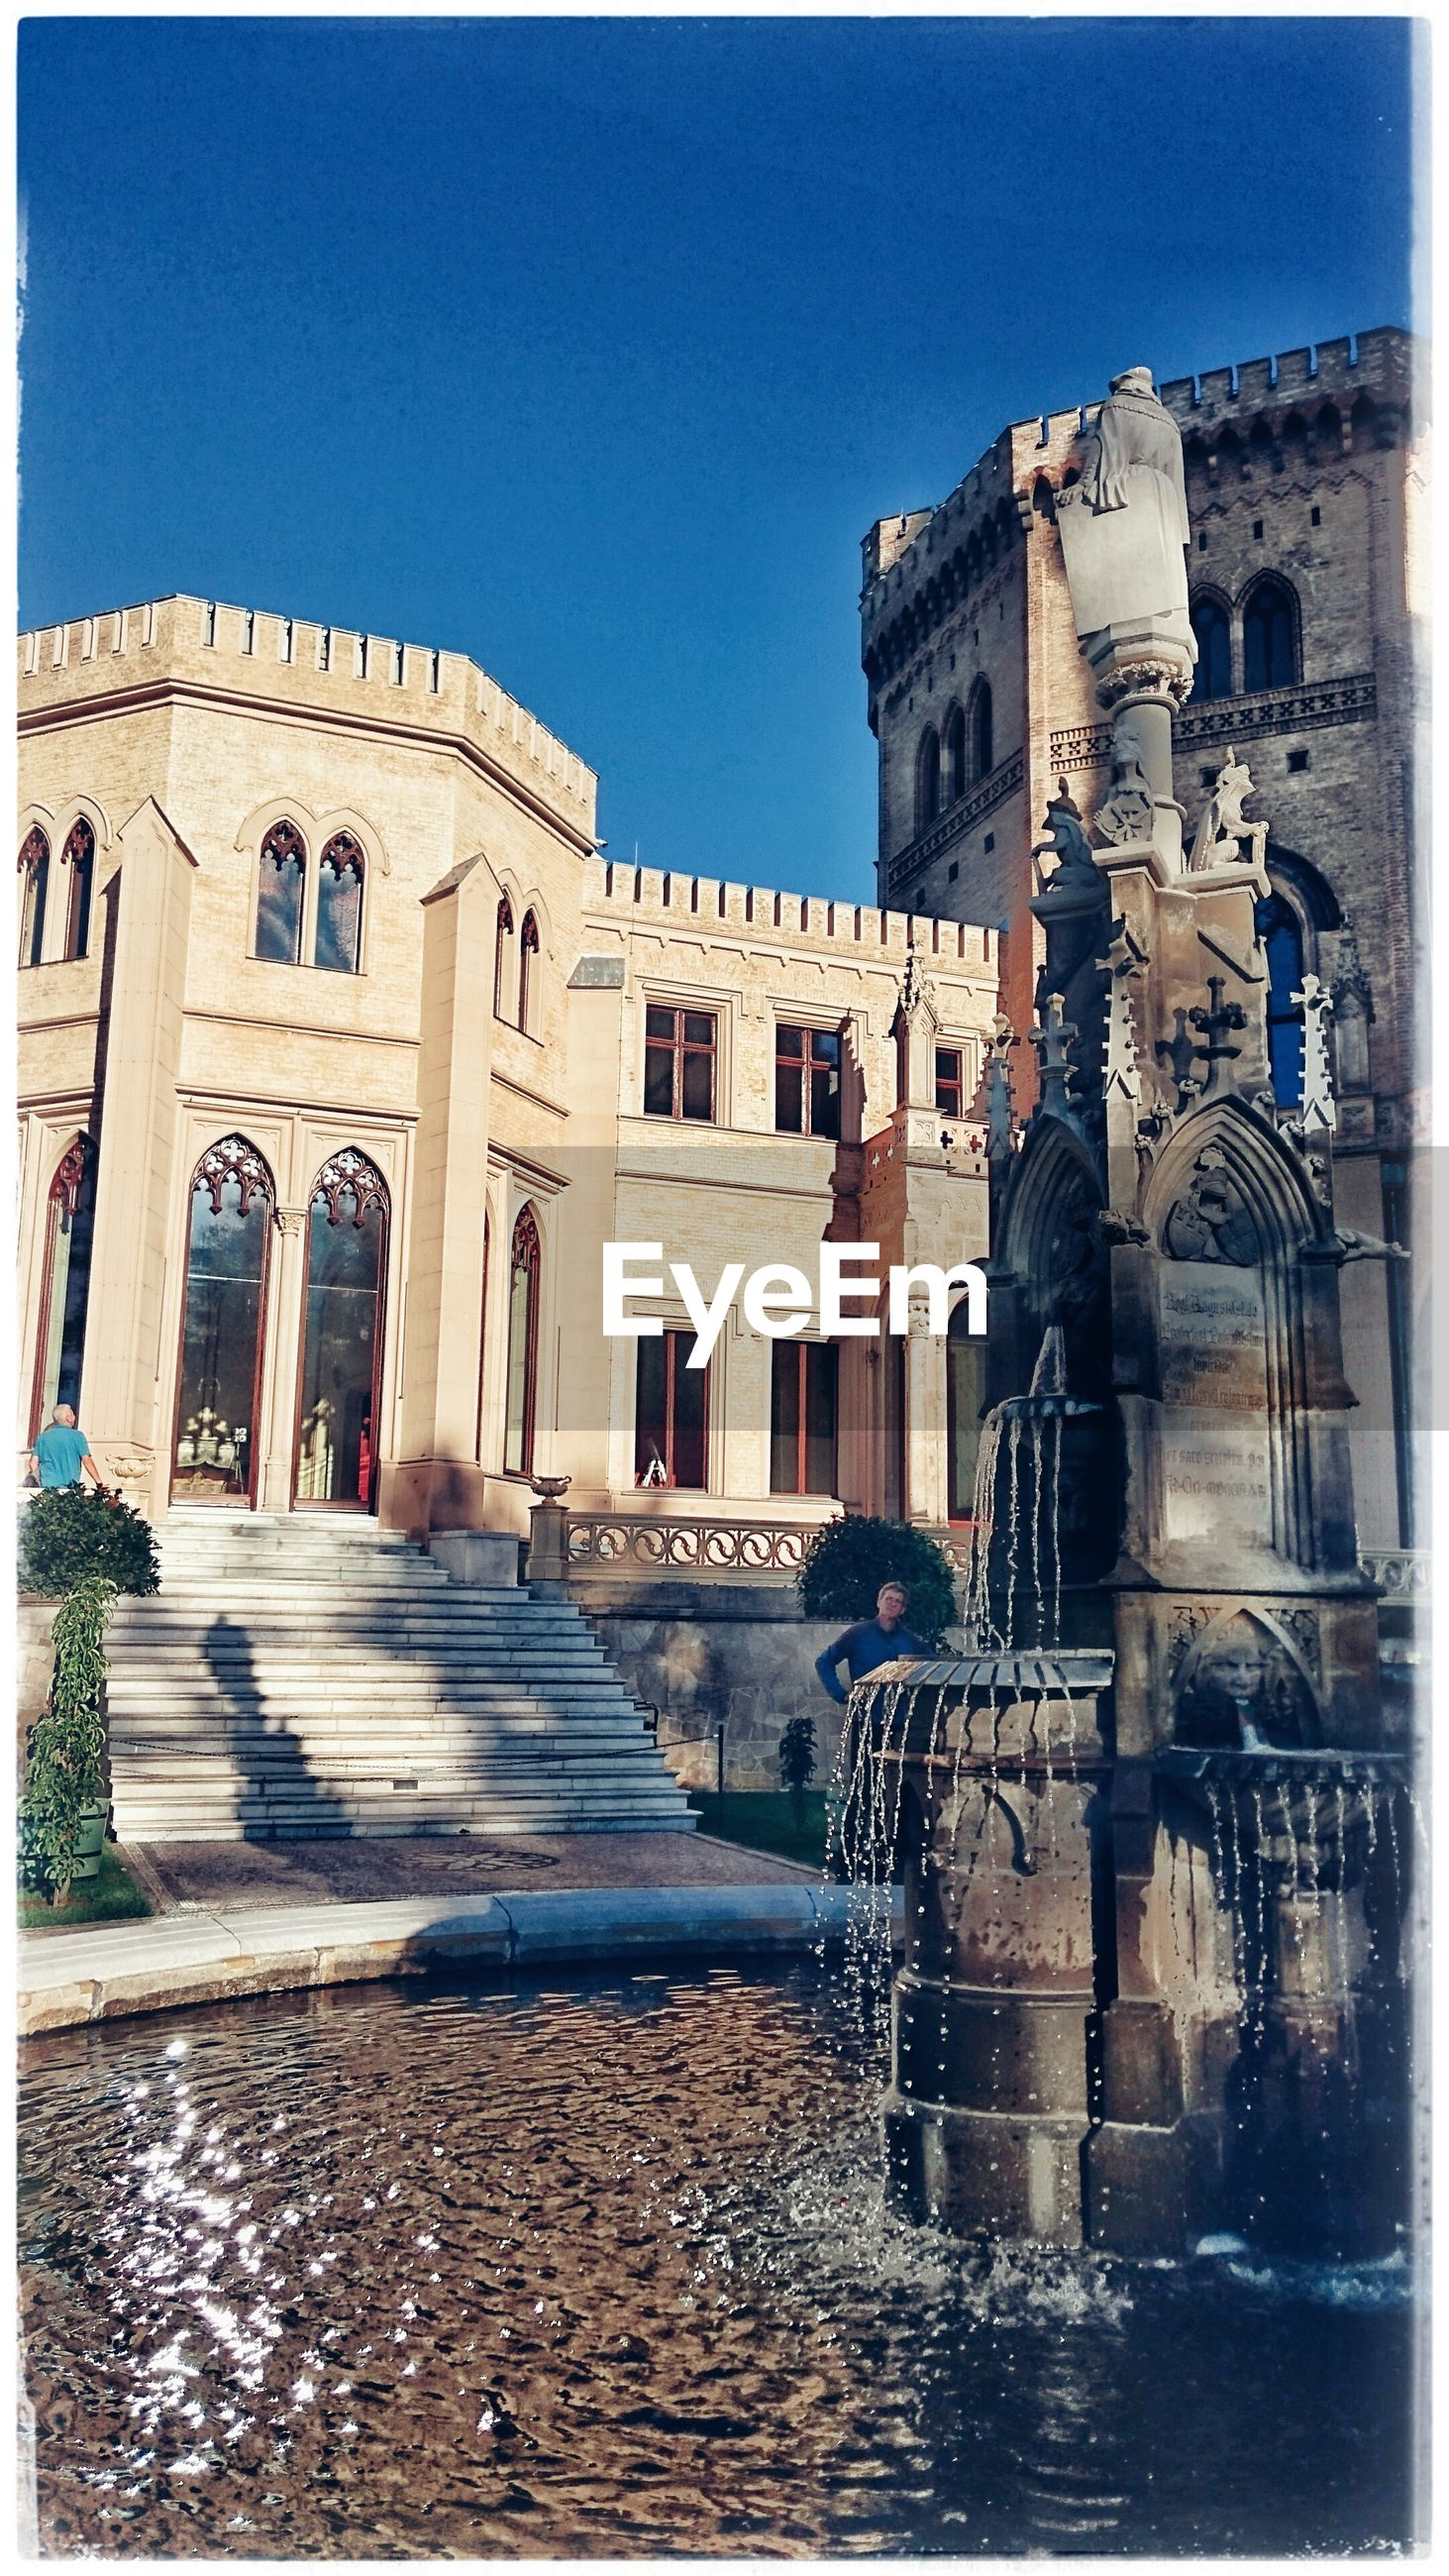 architecture, building exterior, built structure, human representation, statue, blue, sculpture, clear sky, city, travel destinations, art, art and craft, spirituality, famous place, auto post production filter, religion, fountain, in front of, place of worship, facade, history, day, water, outdoors, old town, memories, architectural column